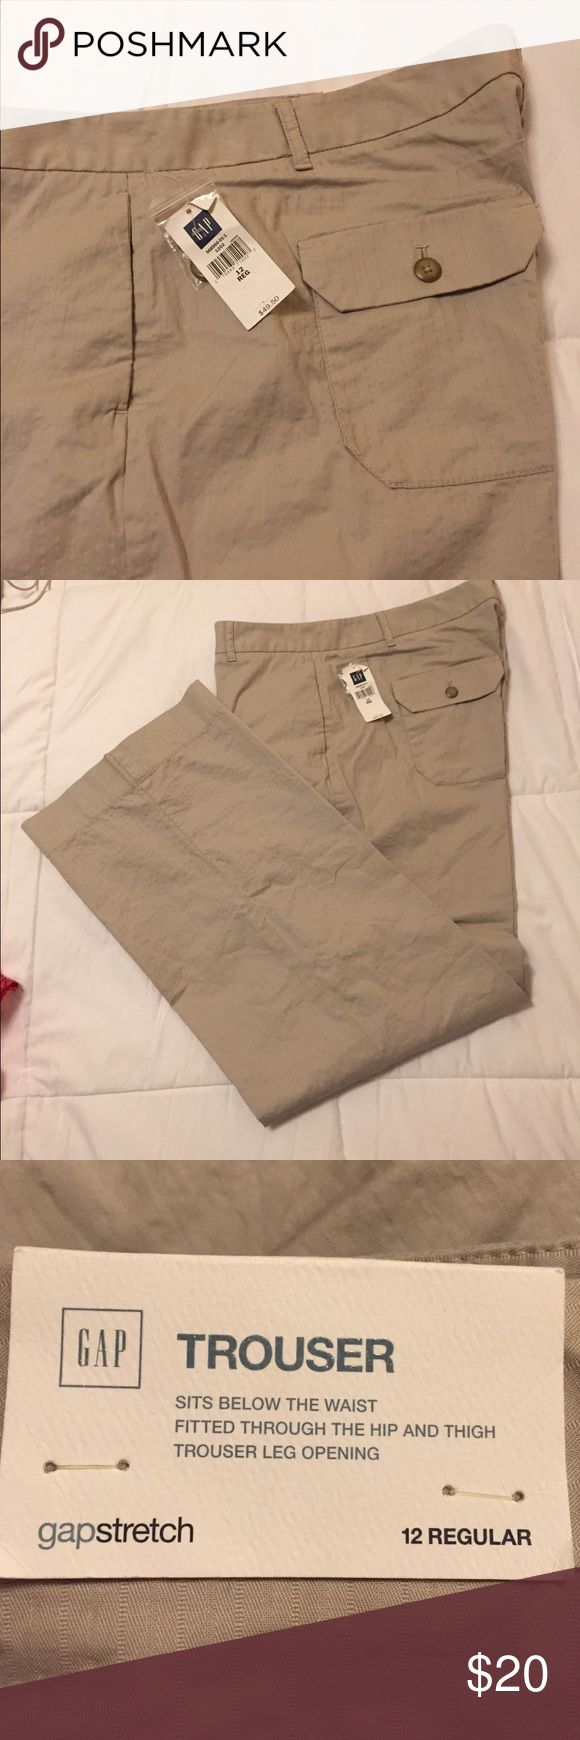 "GAP brand wide leg trousers Khaki colored GAP brand wide leg dress trousers. These have flap style pockets on the back with hidden pockets in front. Small hip pocket on right hip. There is s subtle pinstripe throughout the fabric. 31"" inseam. 97% cotton/3% spandex. Please ask for additional information if needed before purchasing. (True color is slightly lighter than images shown. I can't seem to find the right light.) GAP Pants Trousers"